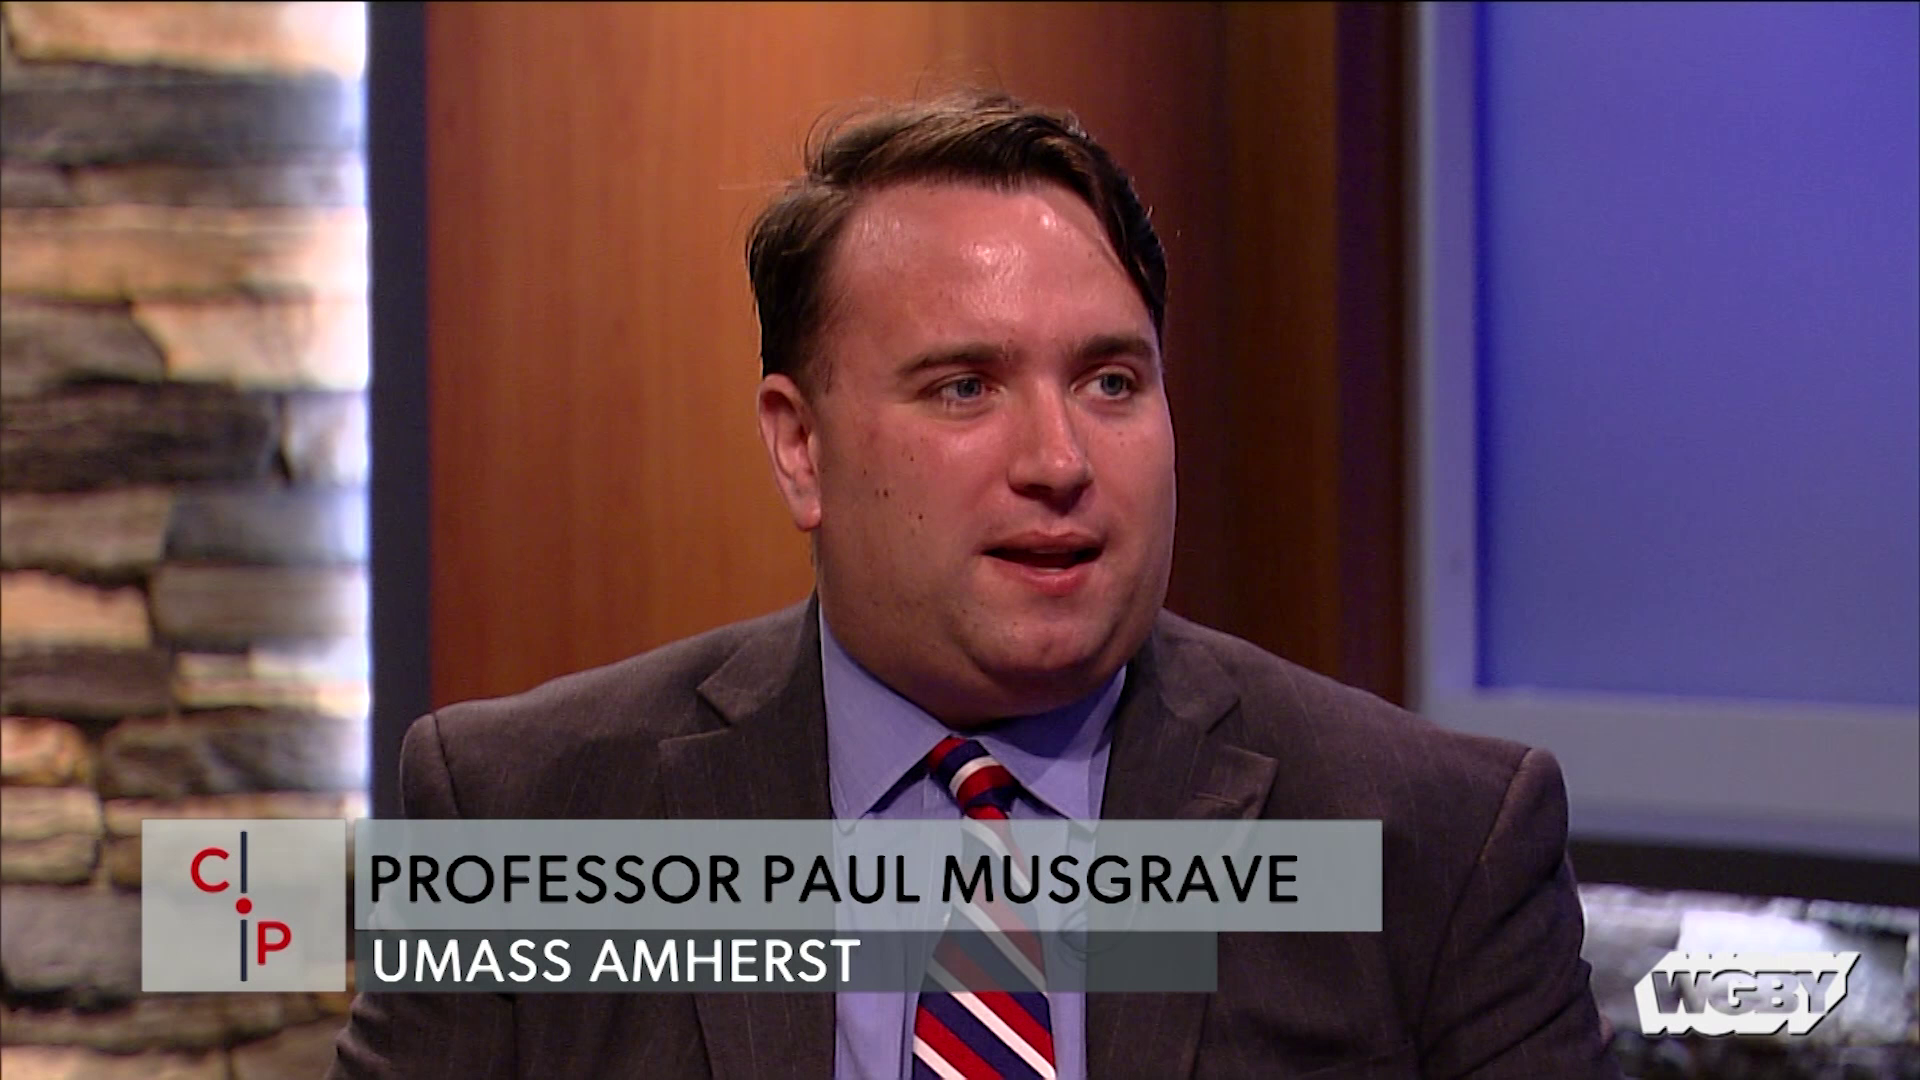 Learn about the history of NATO and its role on the world stage with American Foreign Policy Expert UMass Amherst Assistant Professor Paul Musgrave.